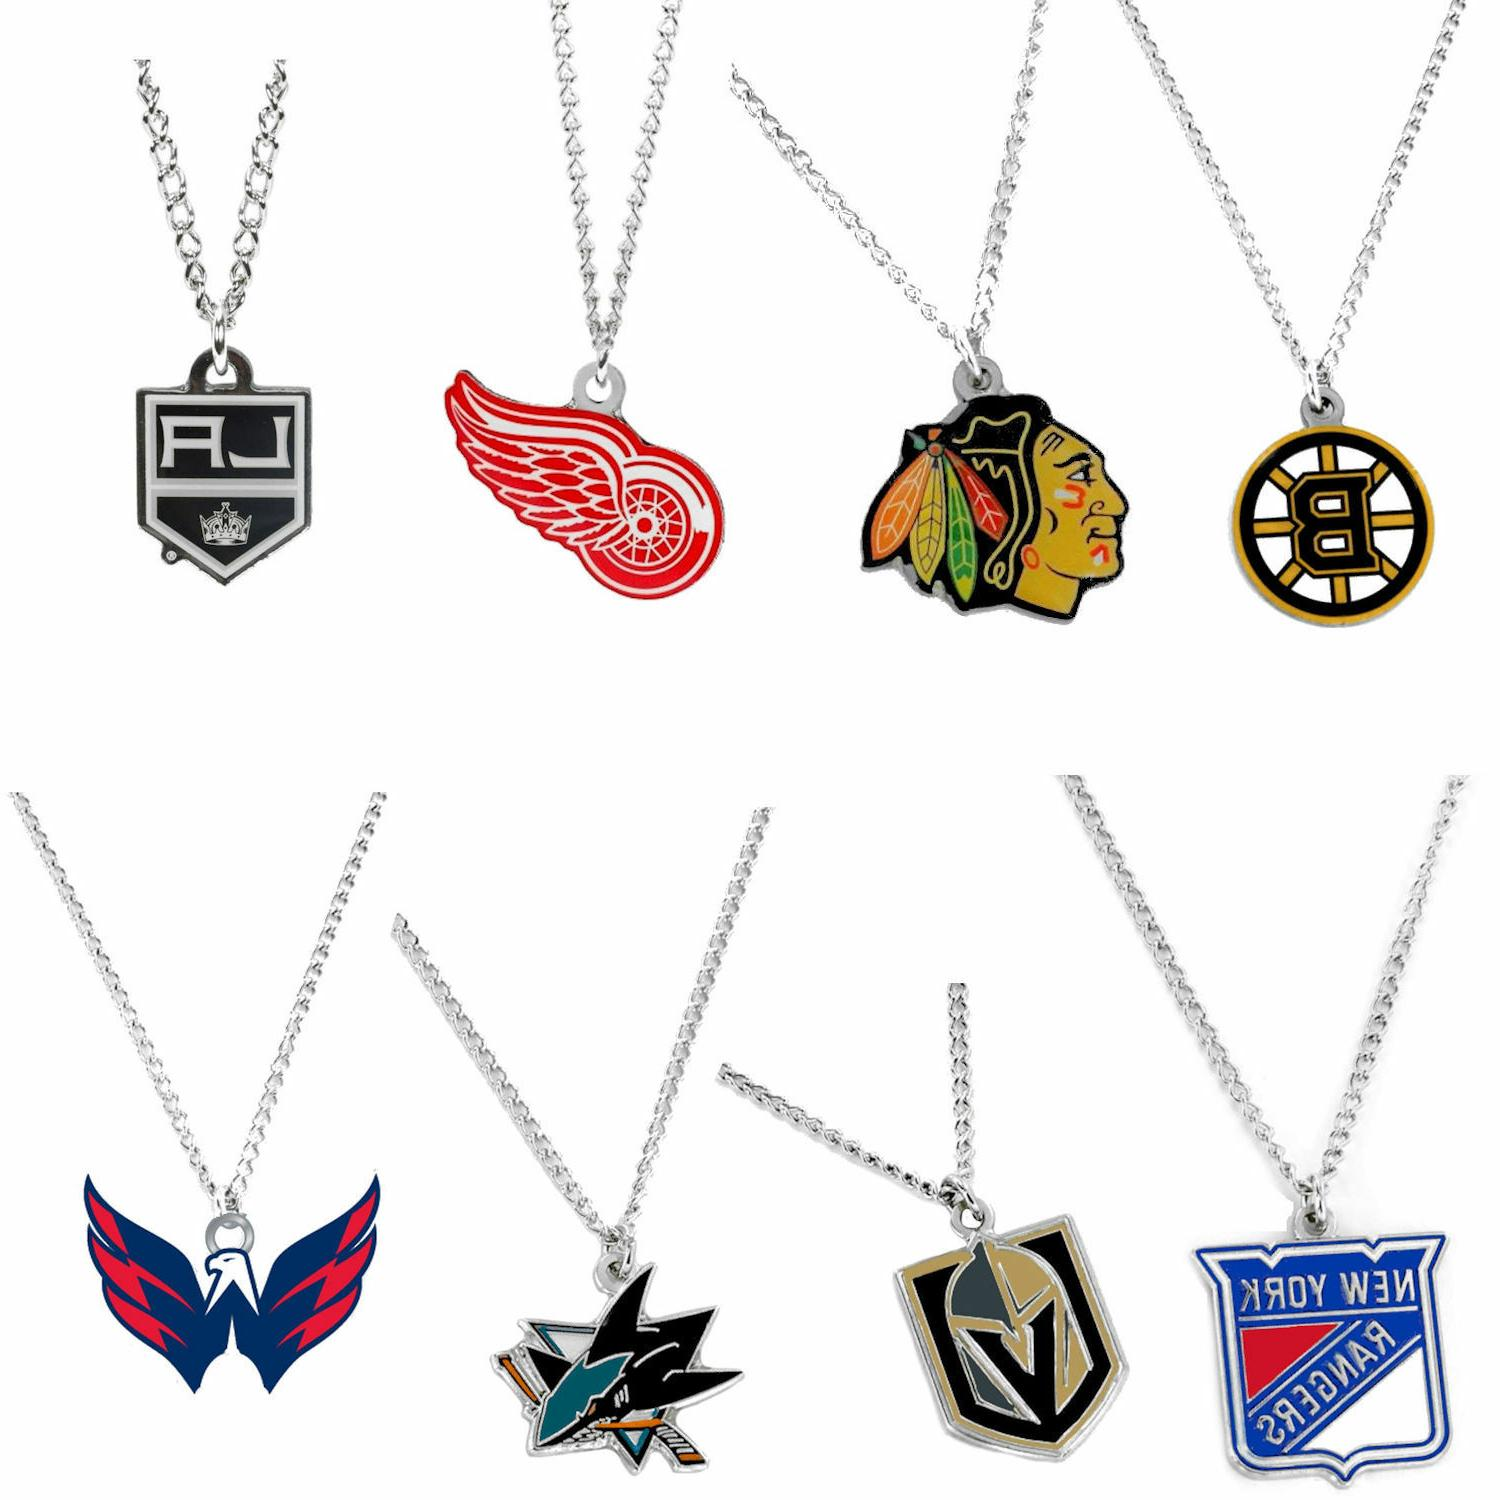 nhl logo necklace charm and chain pendant